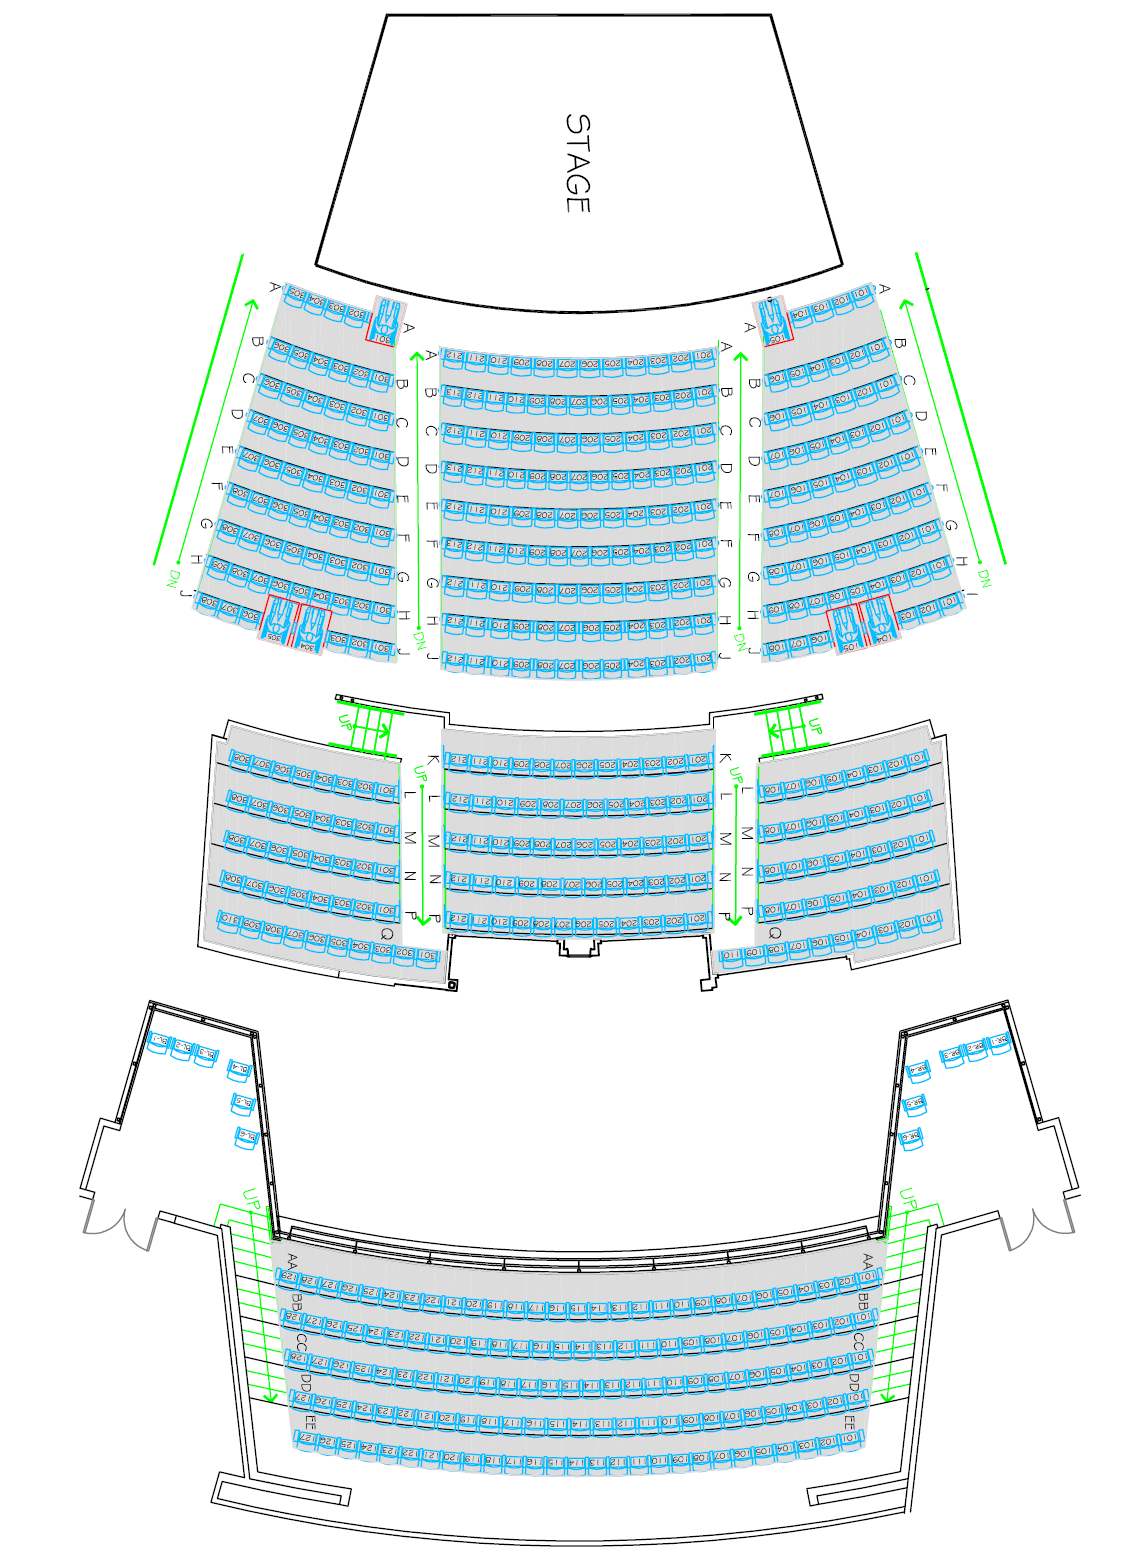 Total Seating Capacity 534 Balcony Level 151 seats w/ no wheelchair locations Parterre Level 144 seats w/ no wheelchair locations Orchestra Level 239 seats w/ 6 wheelchair locations All